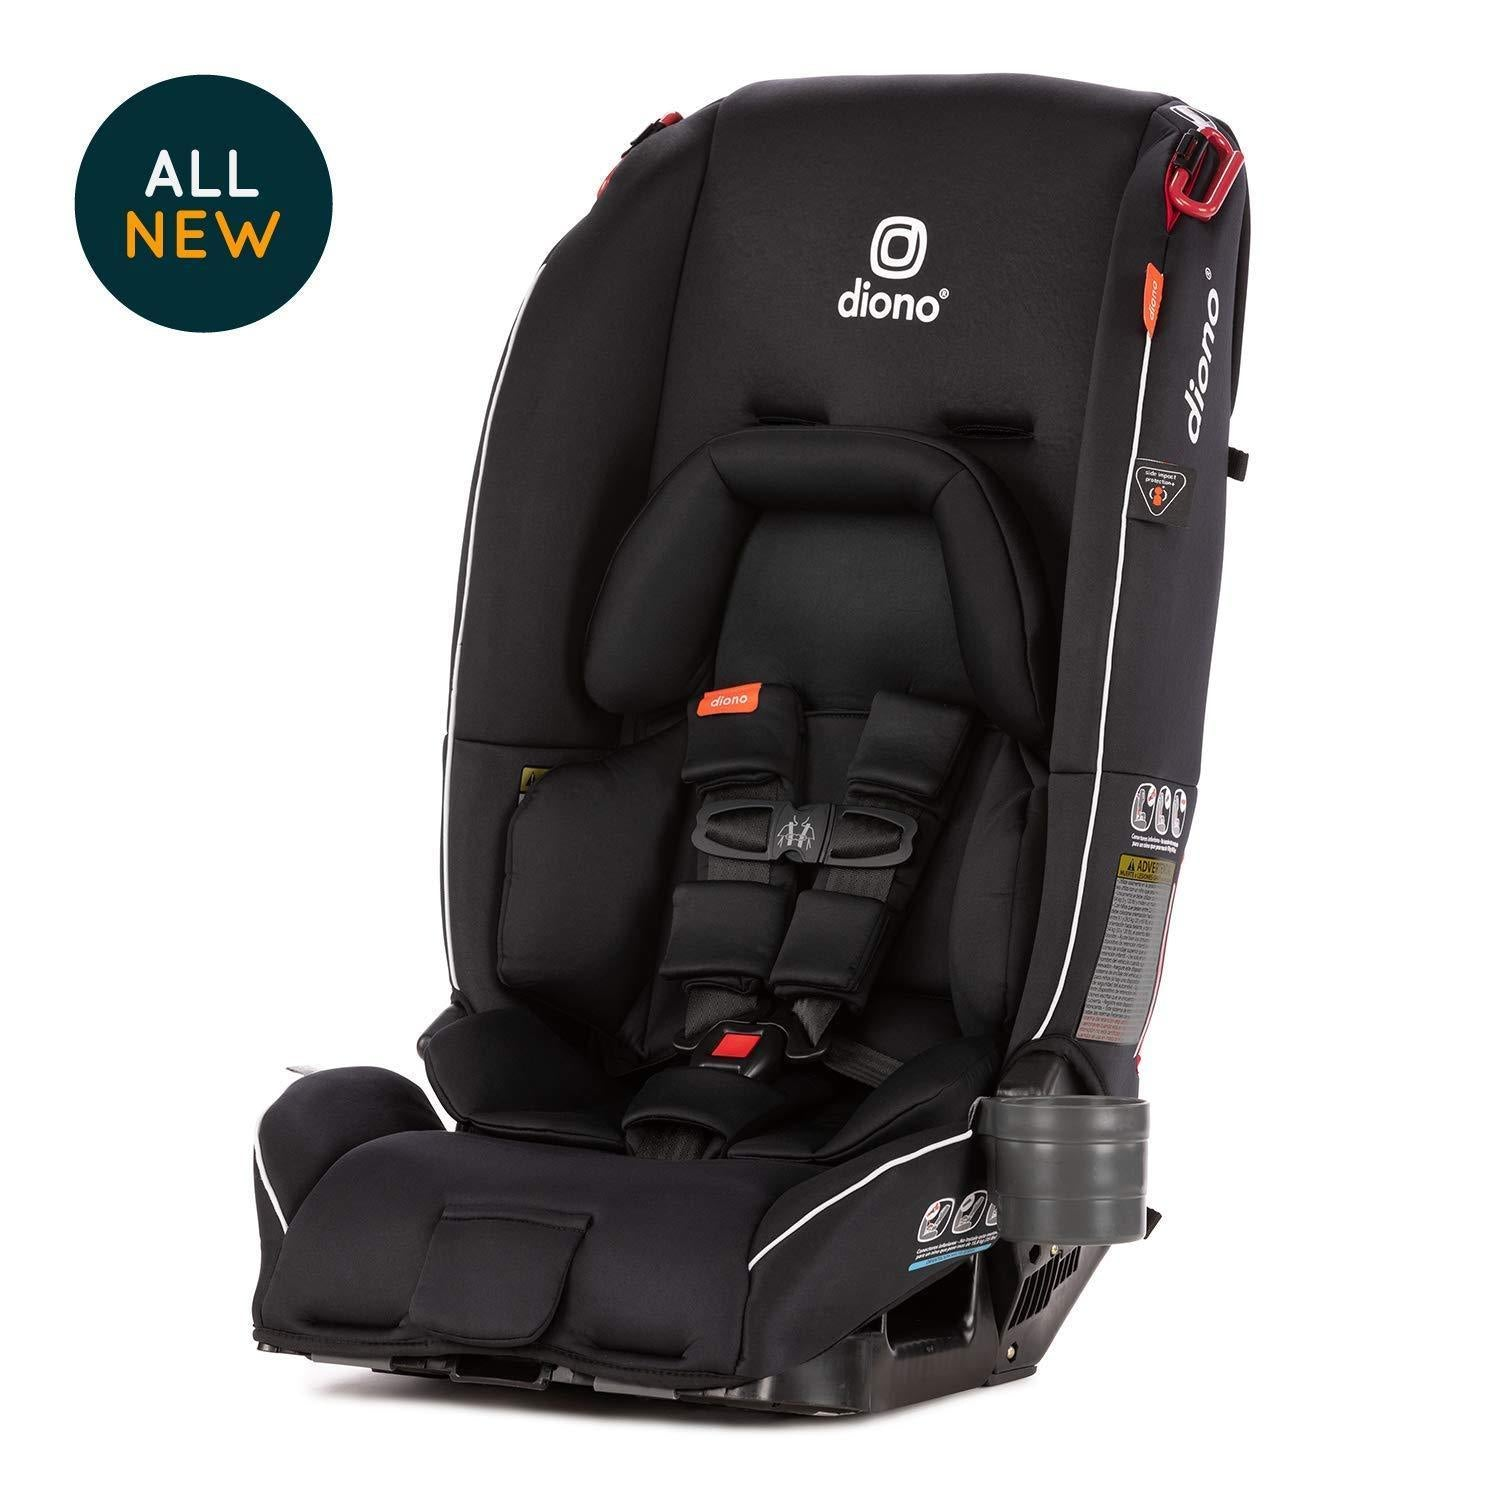 Diono Radian 3 RX Convertible Car Seat in Black